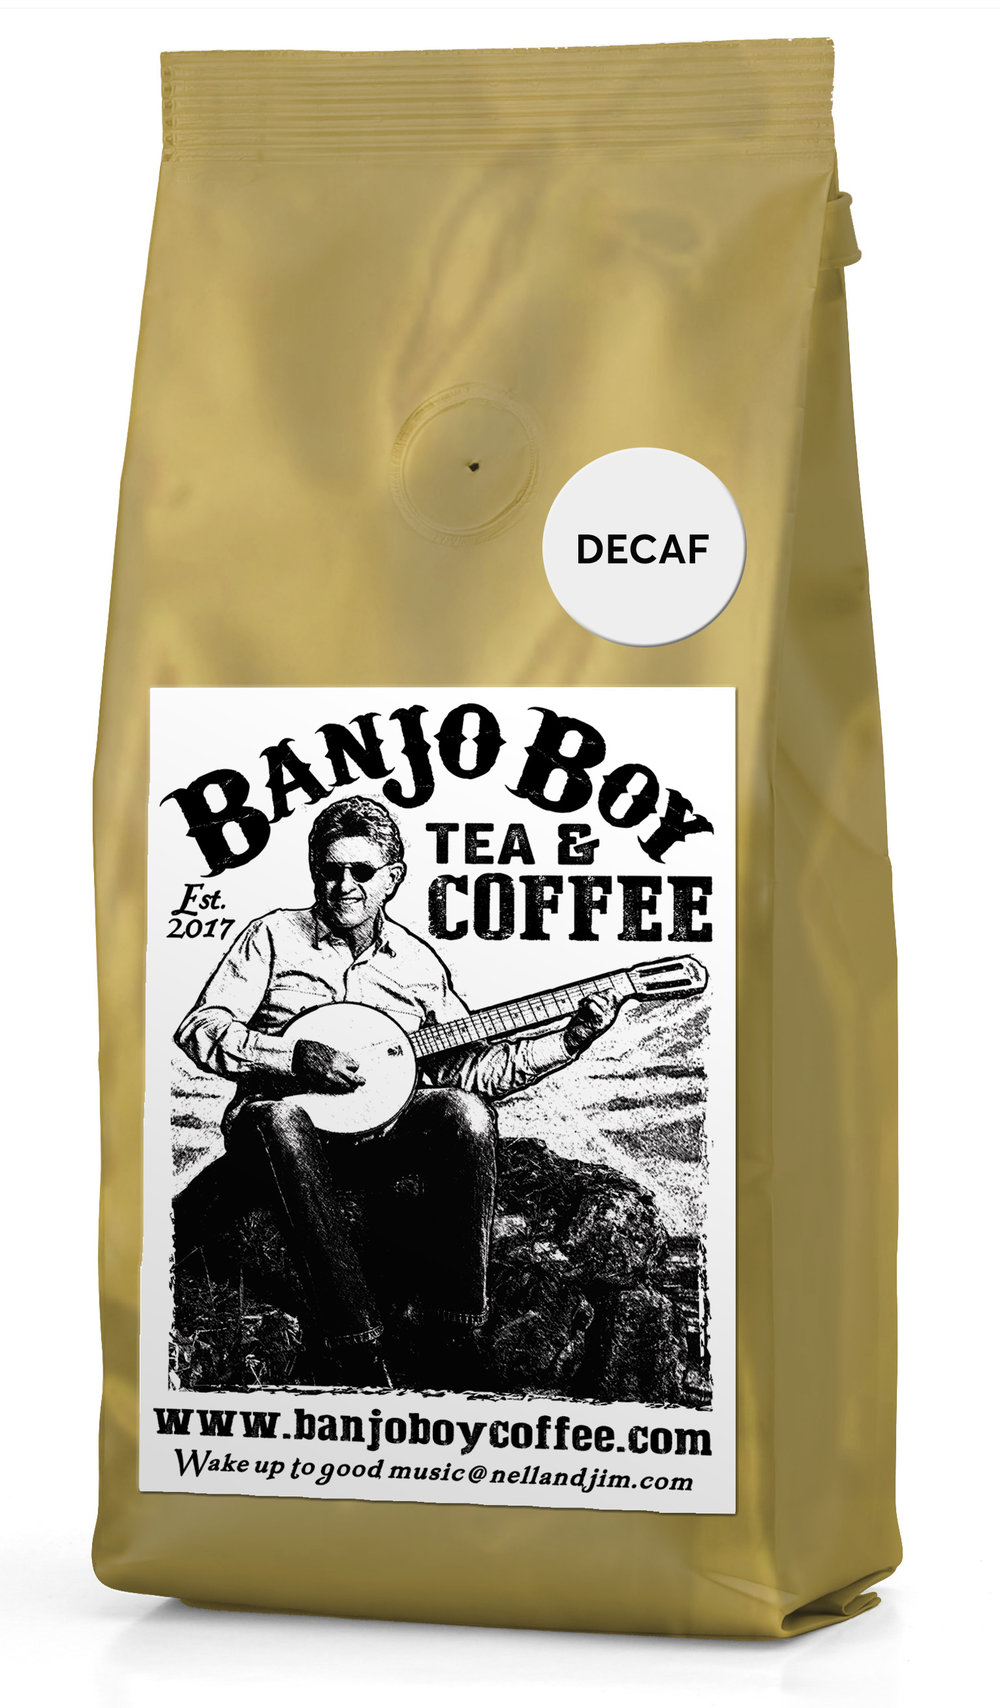 Decaf Blend - All of the same great quality and flavor but without the buzz!